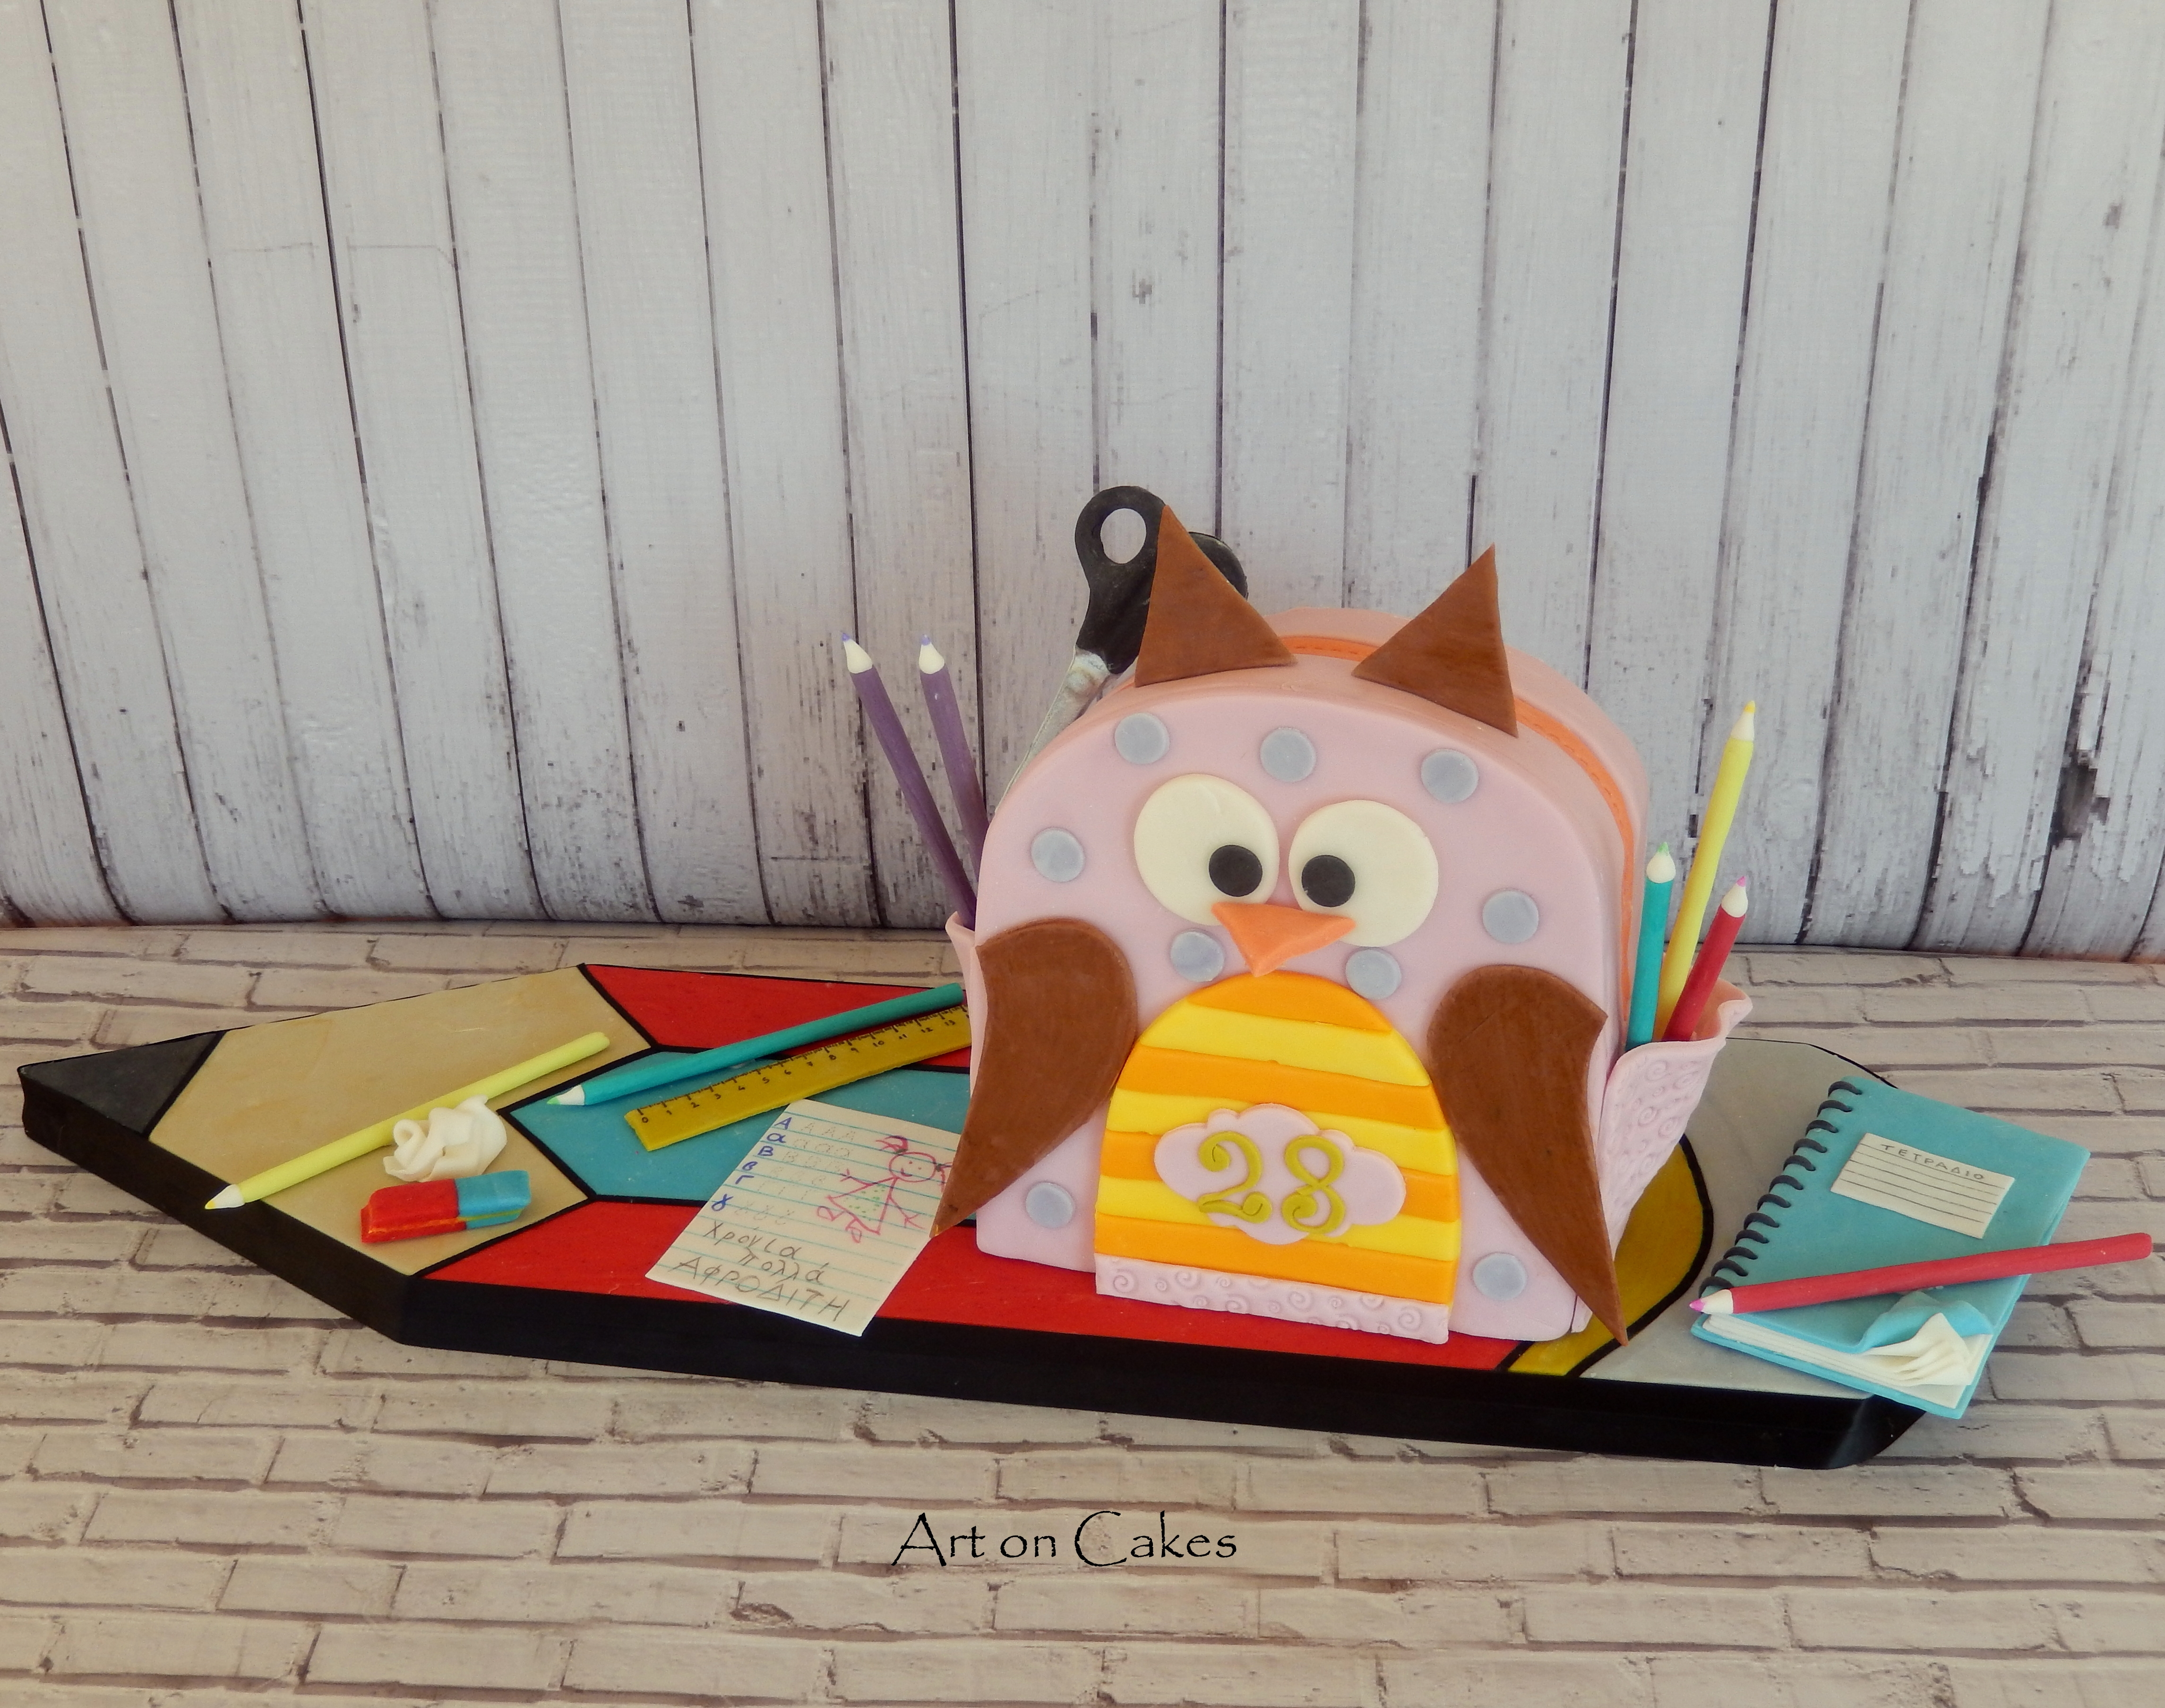 School Bag Cake All edible...